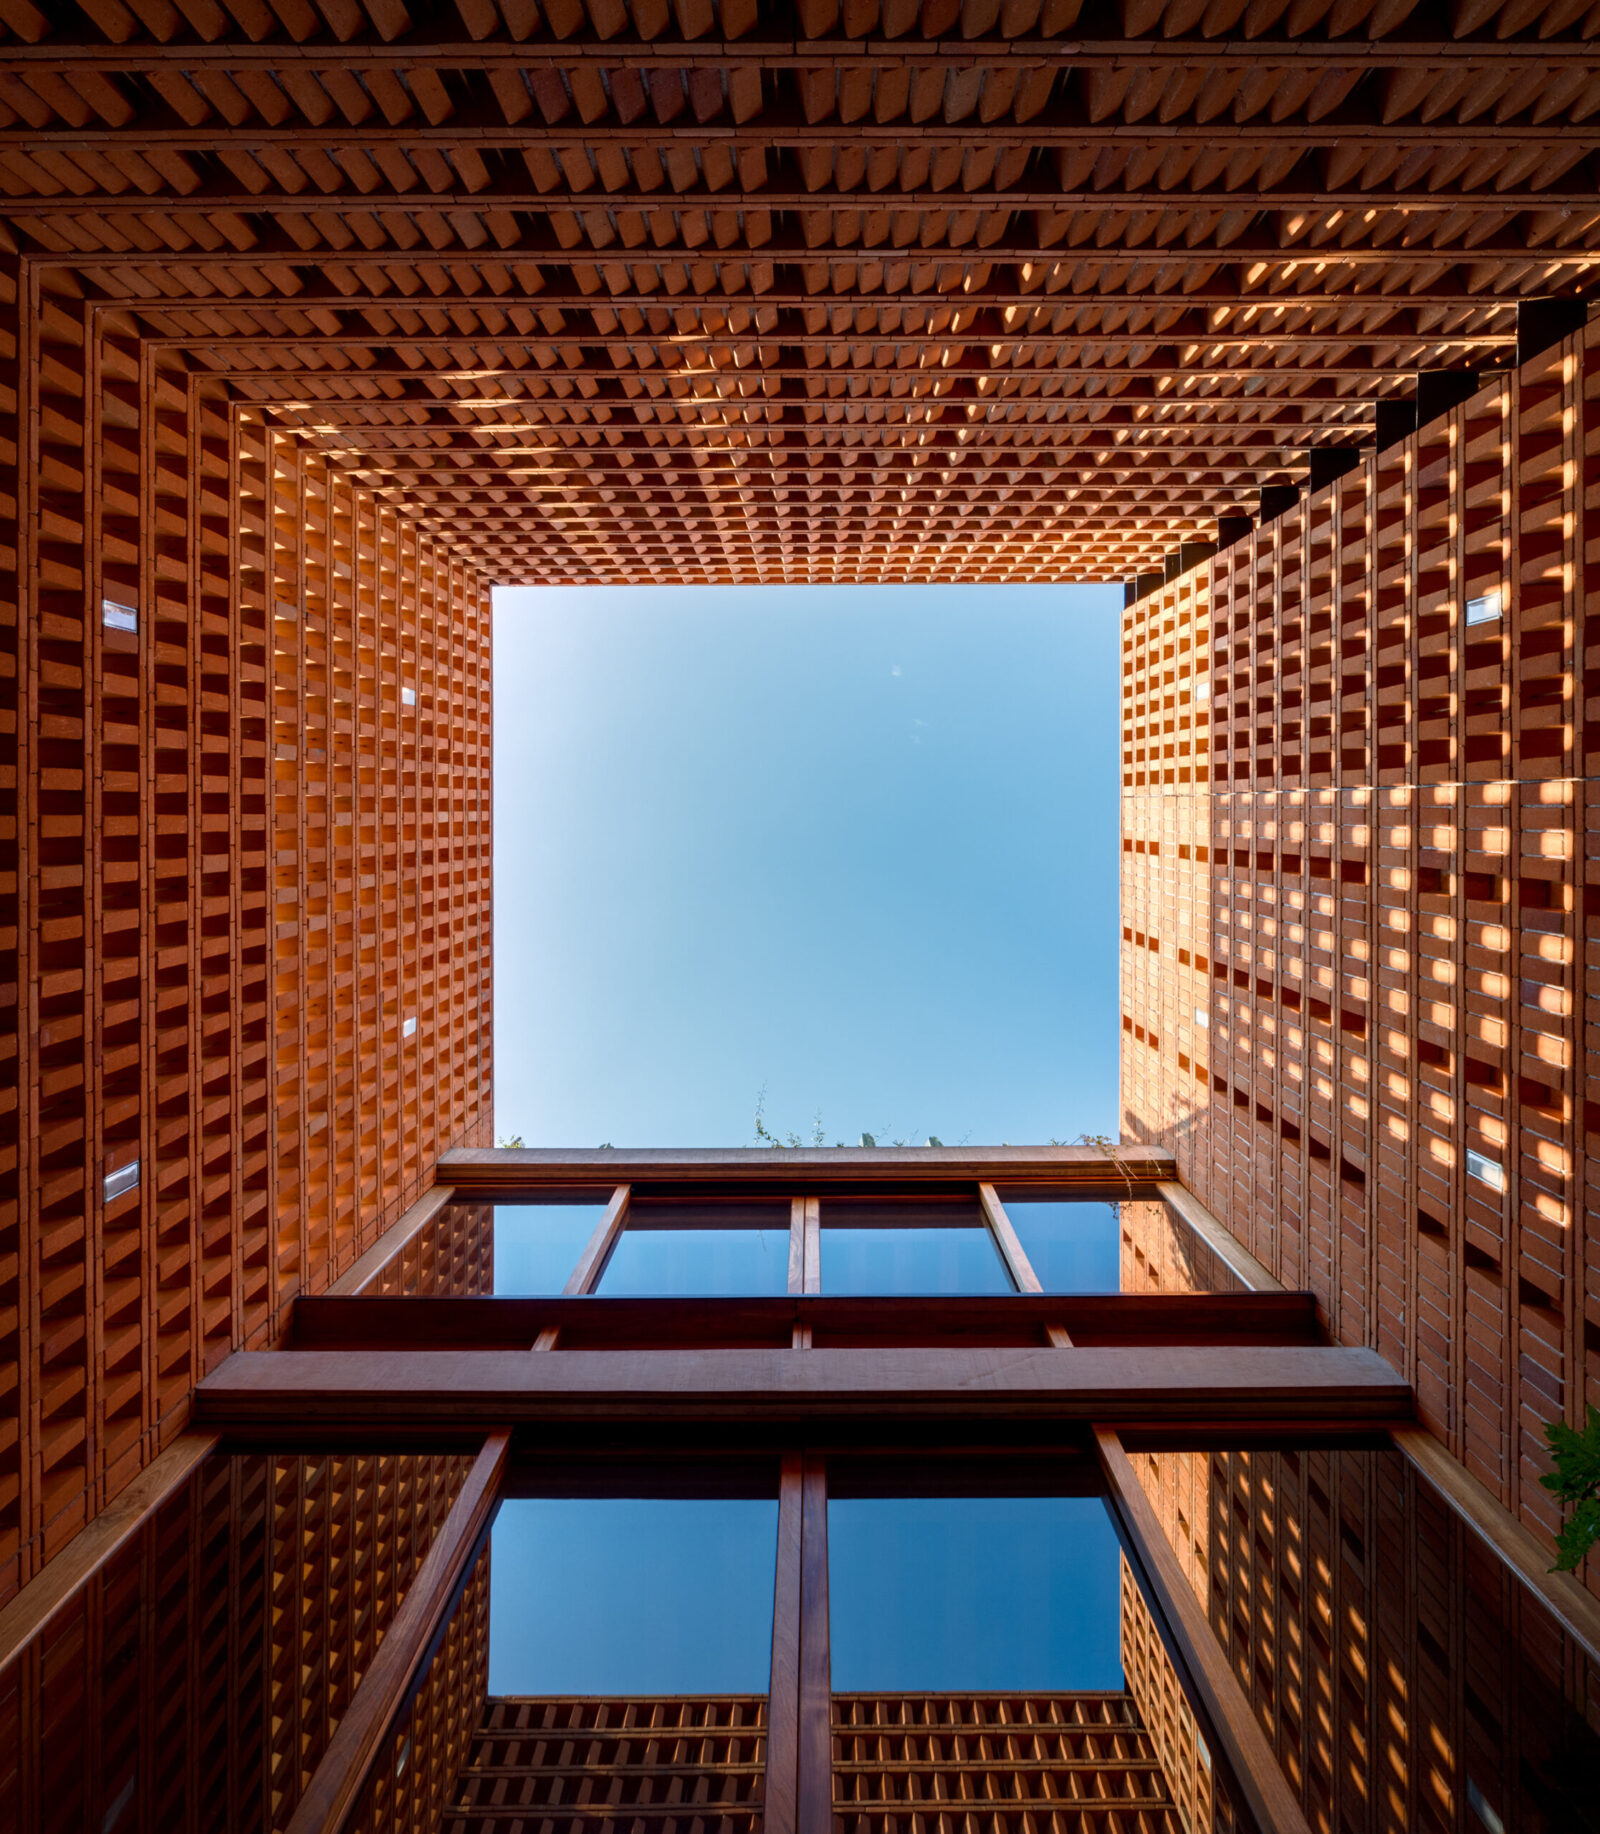 perspective photo looking up from a building courtyard